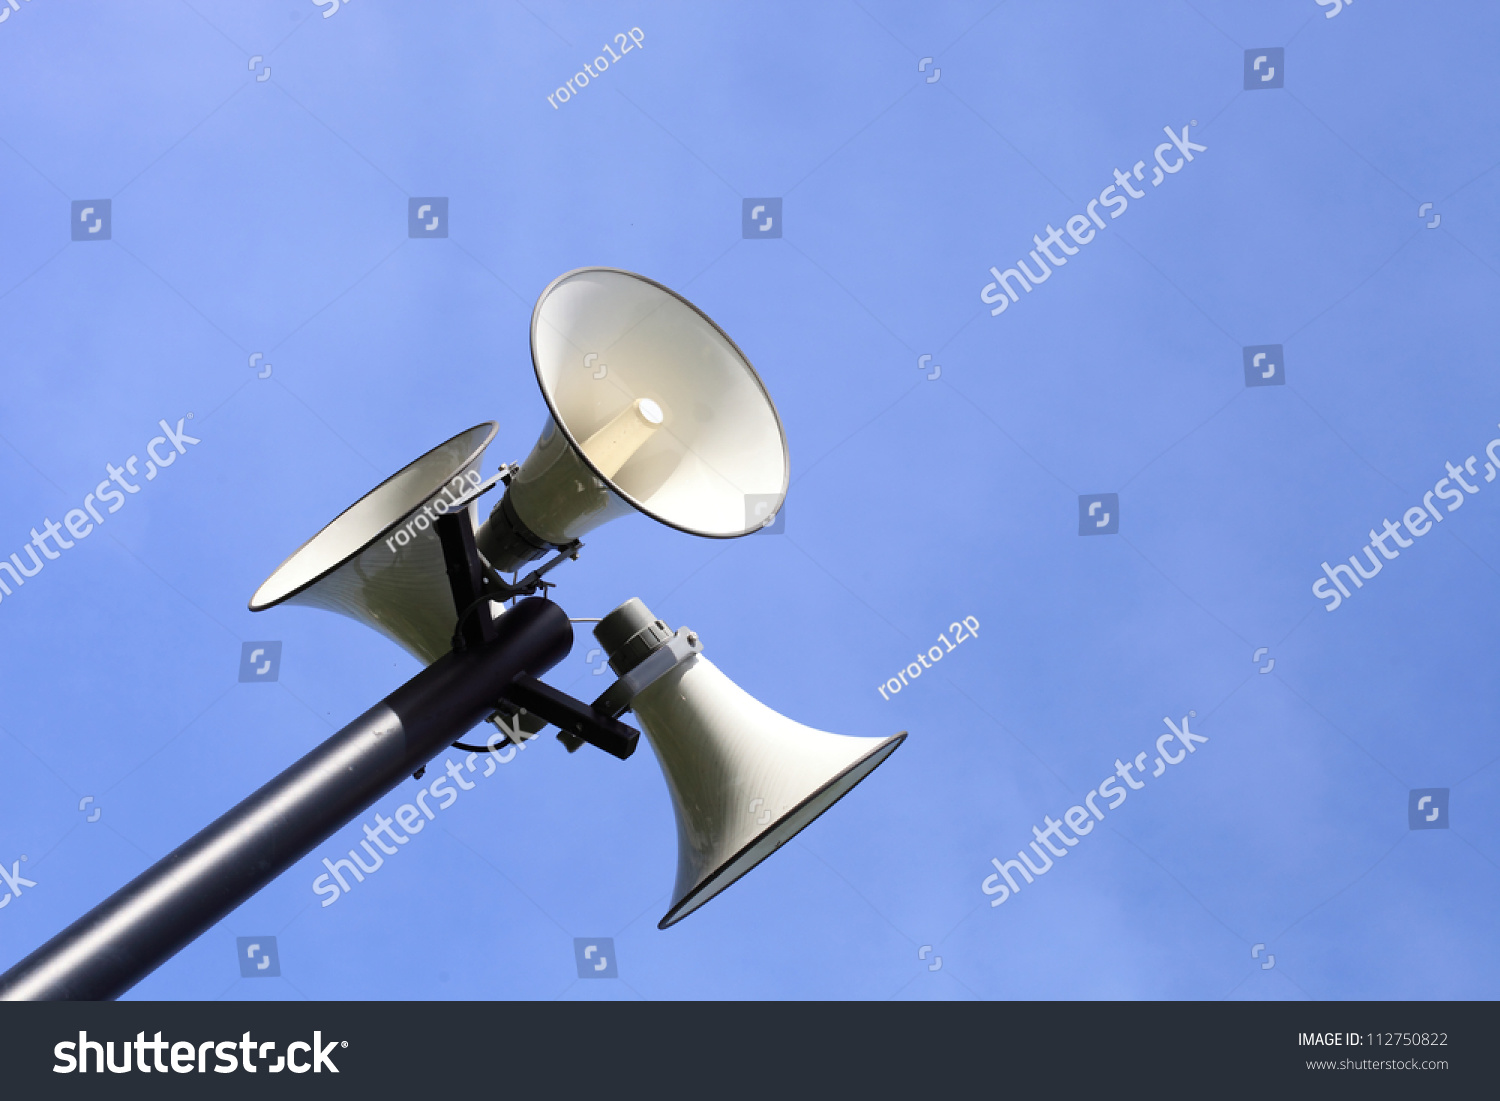 Stock Photo Loudspeakers On A Tall Column besides Tornado Sirens Tested Muskingum County besides Thousands Refuse Evacuate Hurricane Matthew Set Bring Deadly Winds Torrential Rain 1584539 moreover IKKAba0xuM0 together with D7lFNBIYHdMtrPUYItsCrI. on severe weather siren sound